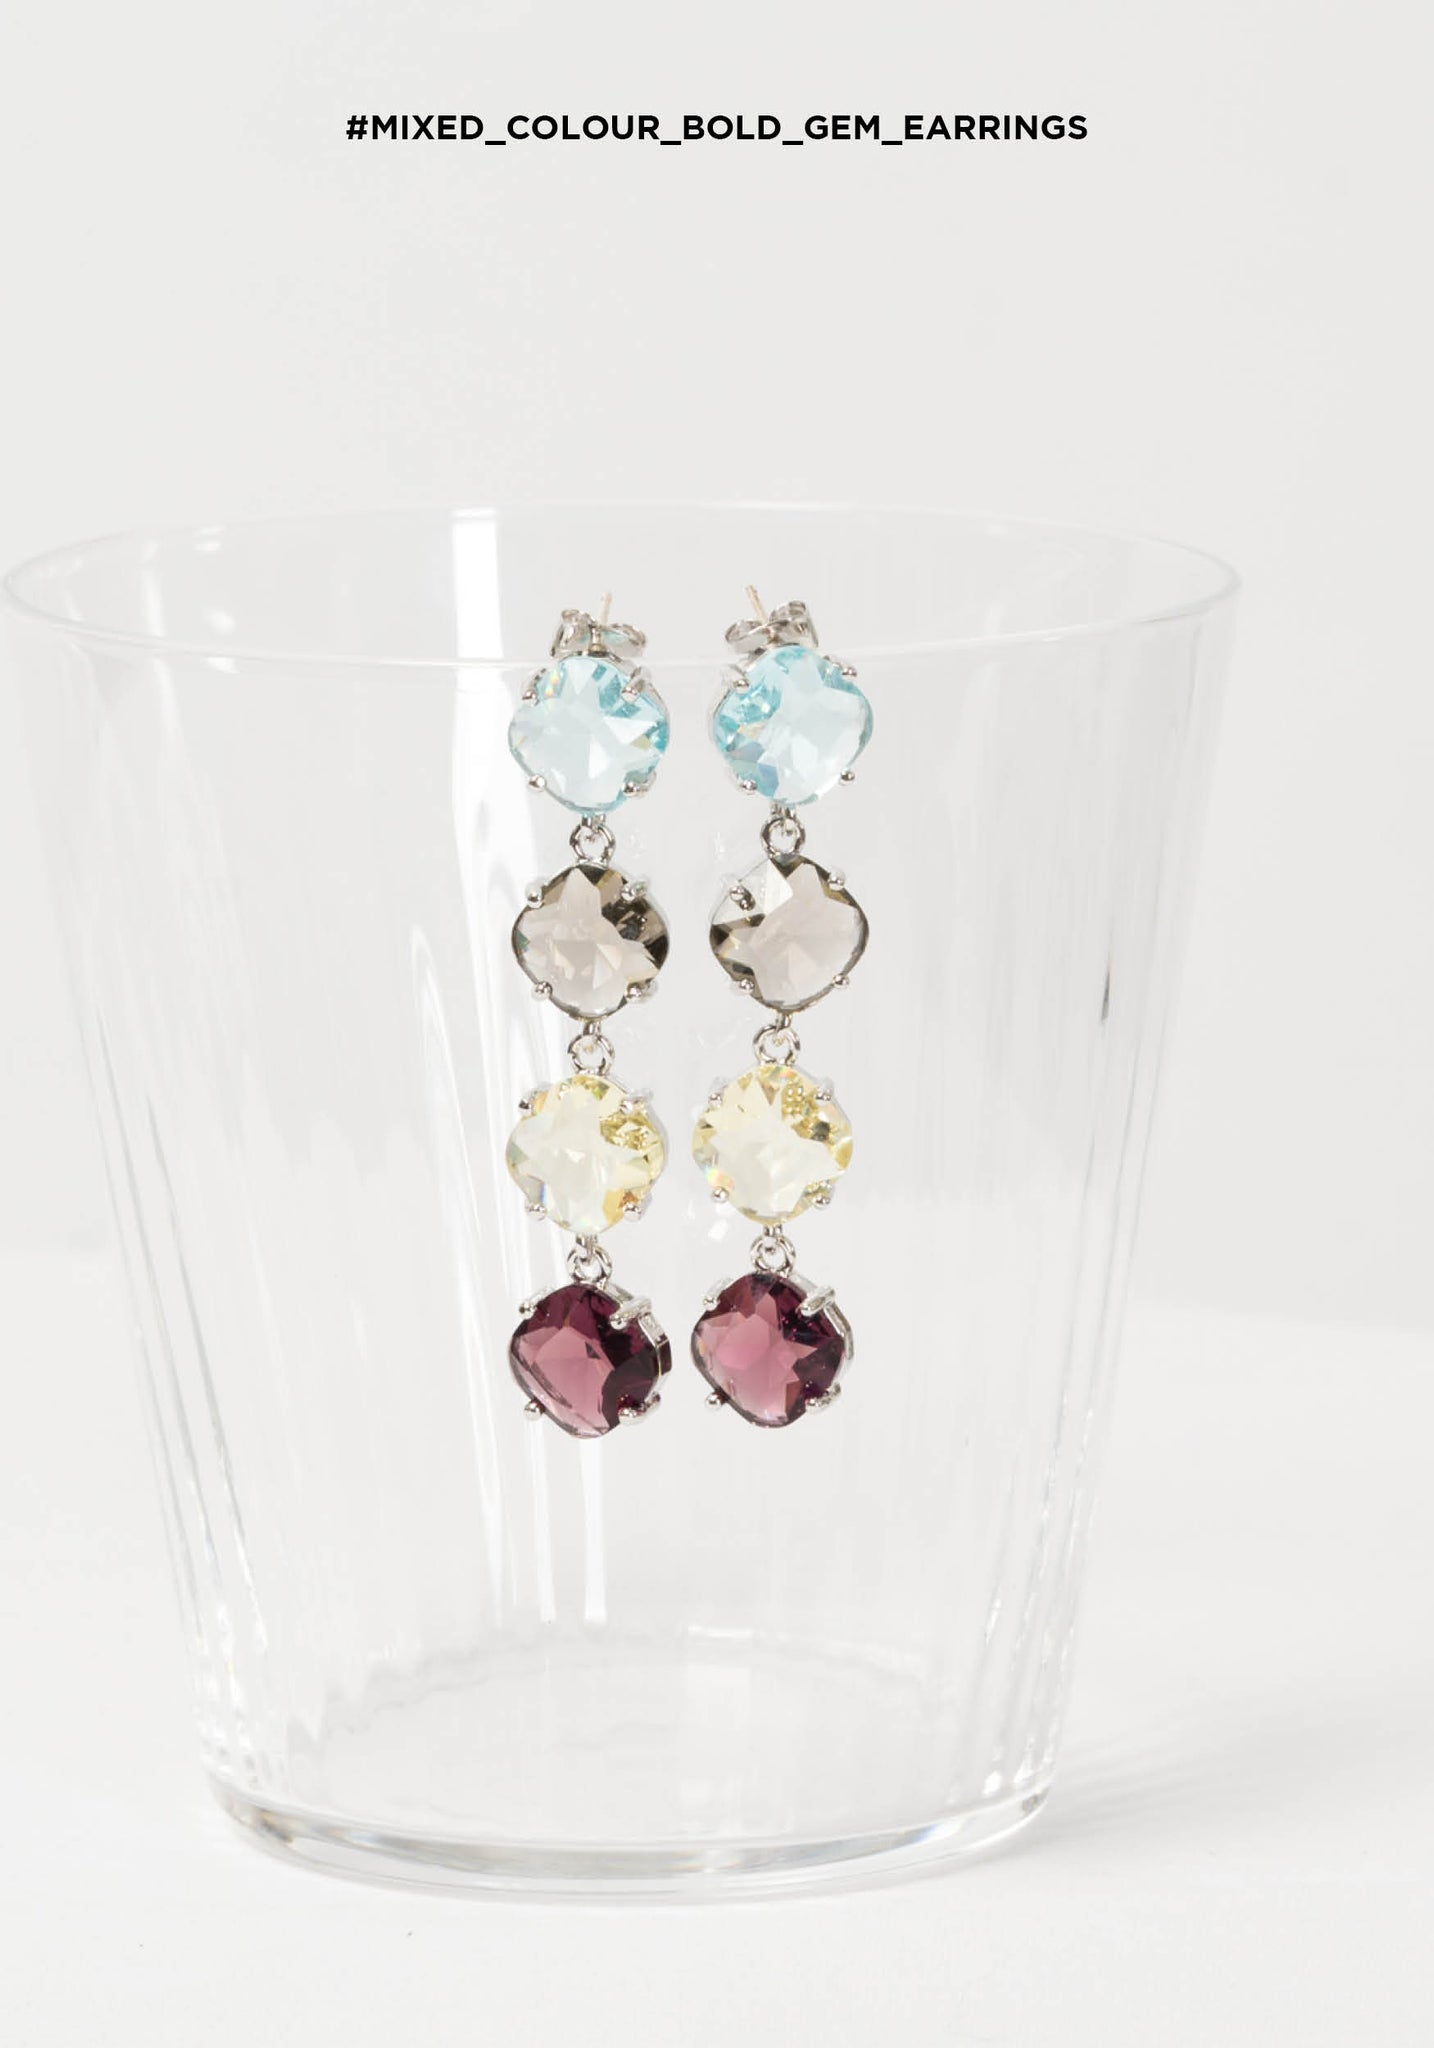 Mixed Colour Bold Gem Earrings